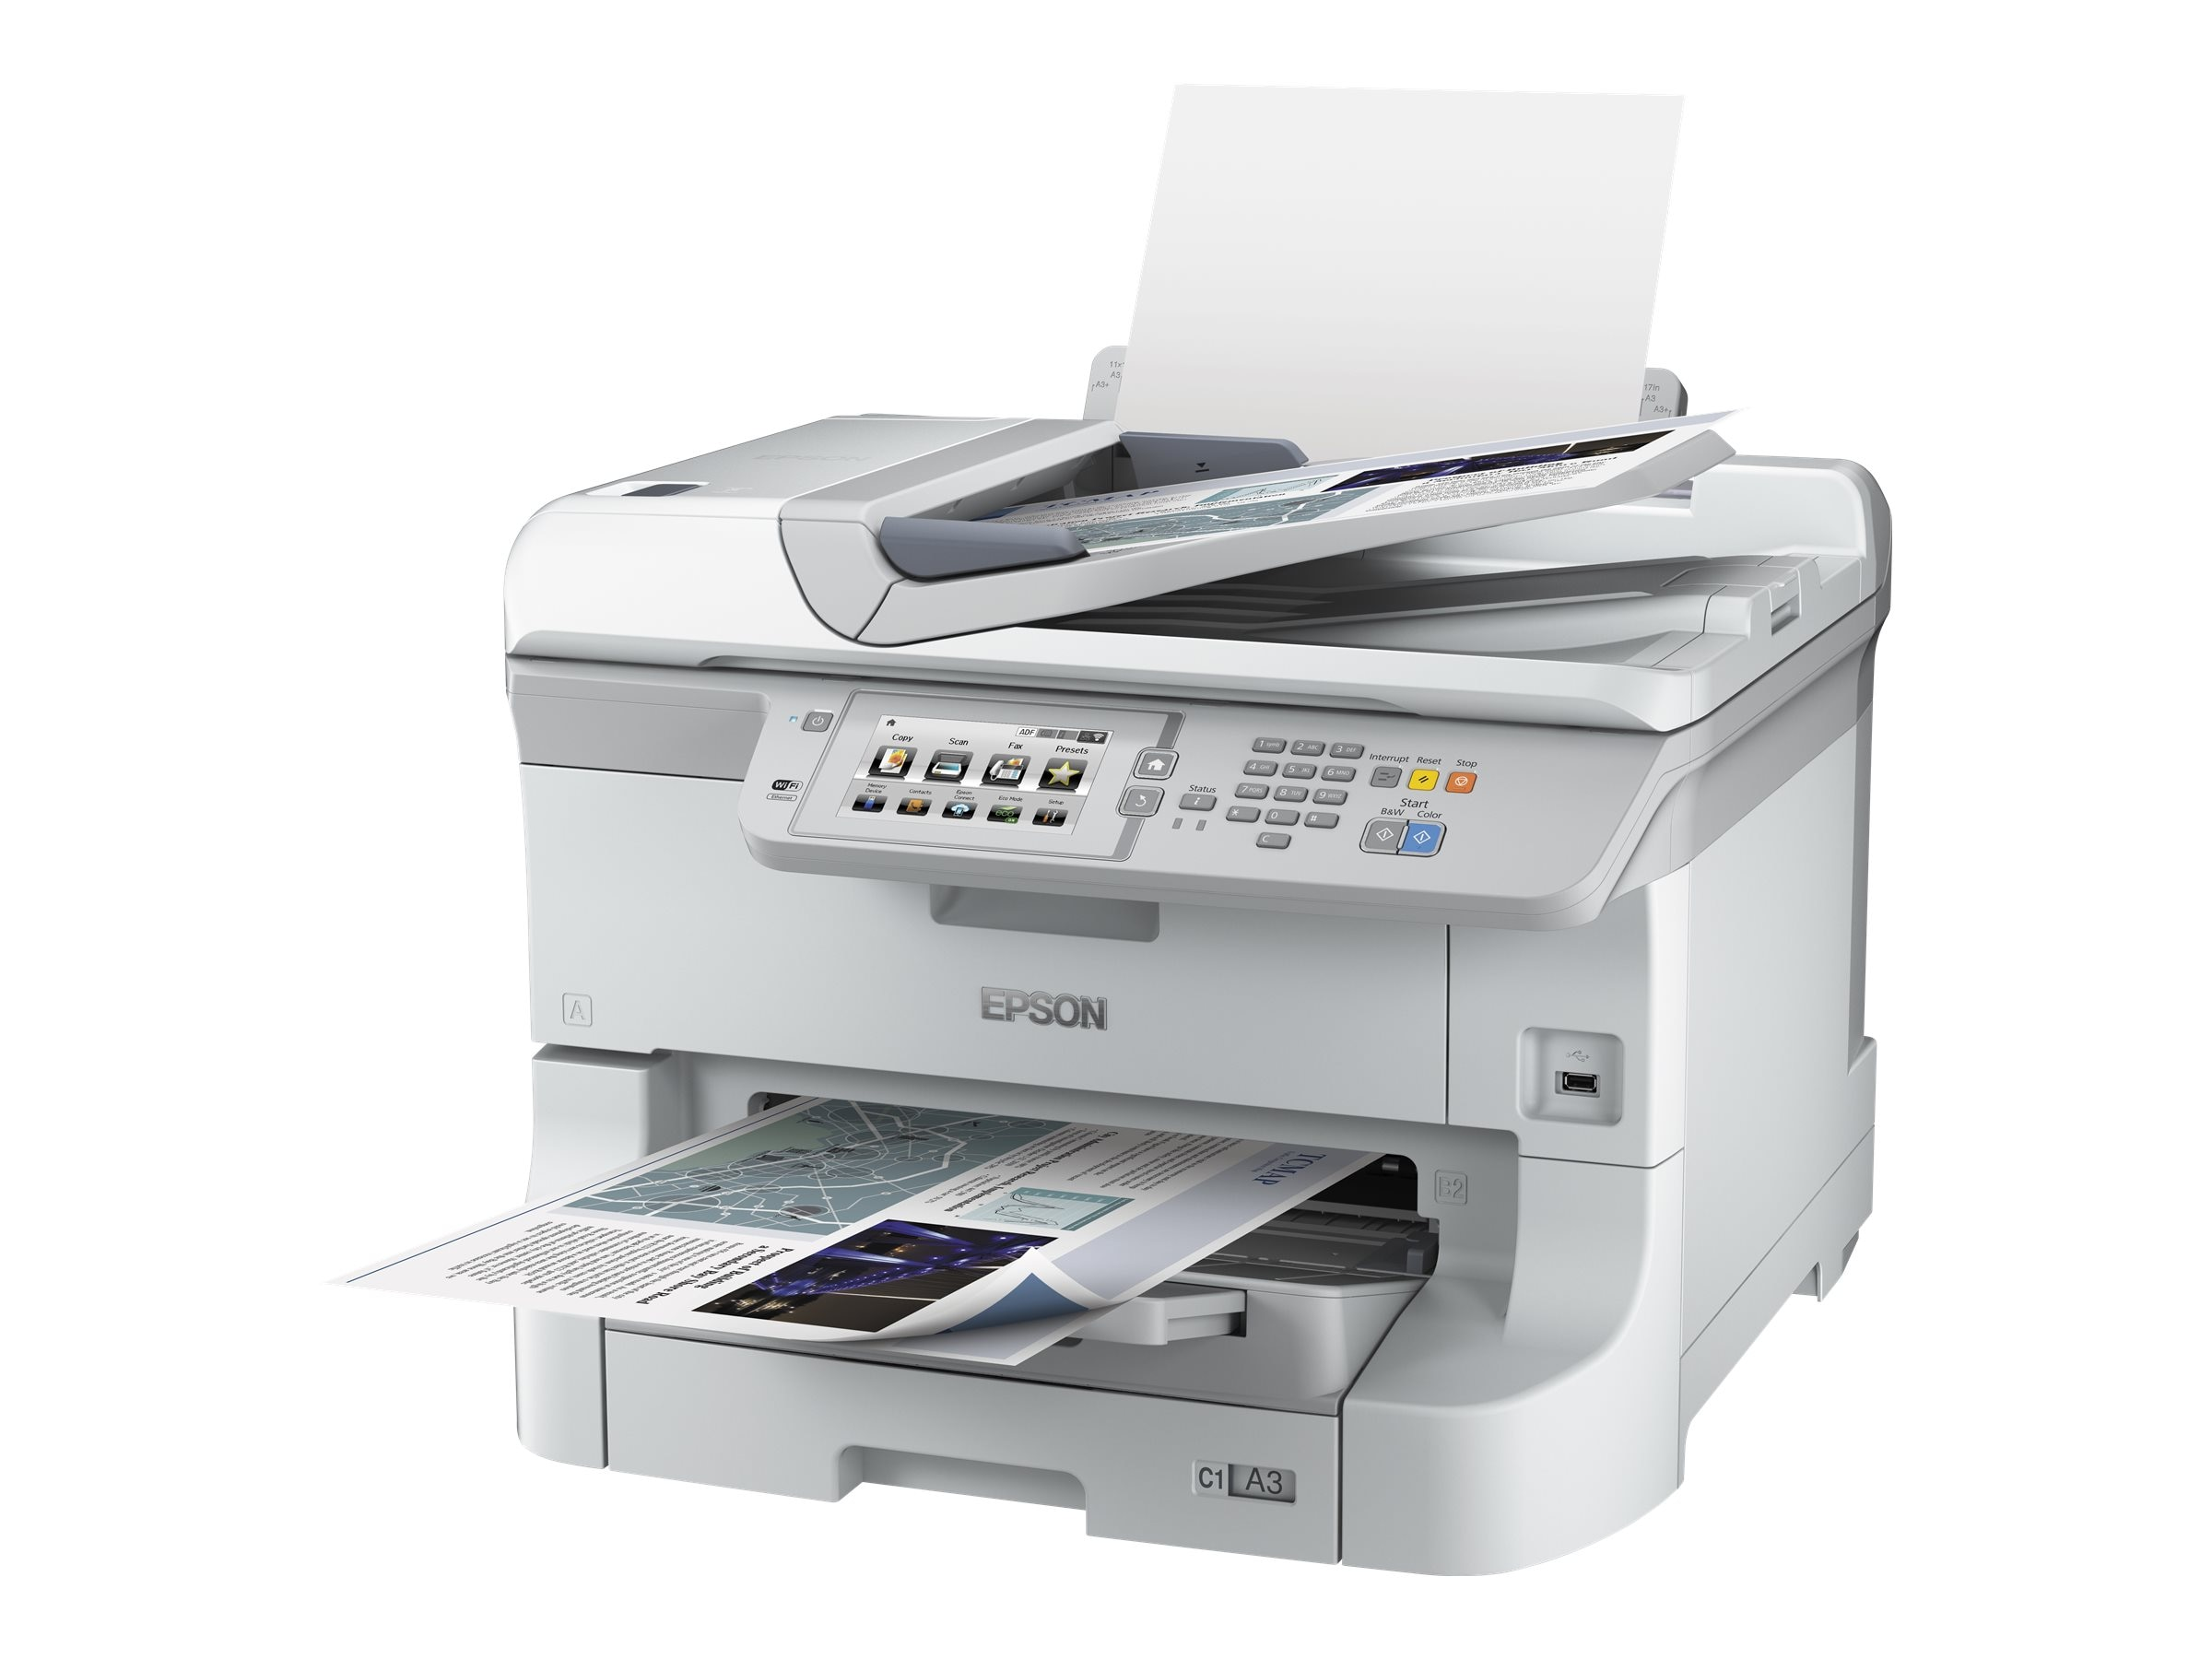 Epson WorkForce Pro WF-8590 Network Multifunction Color Printer, C11CD45201